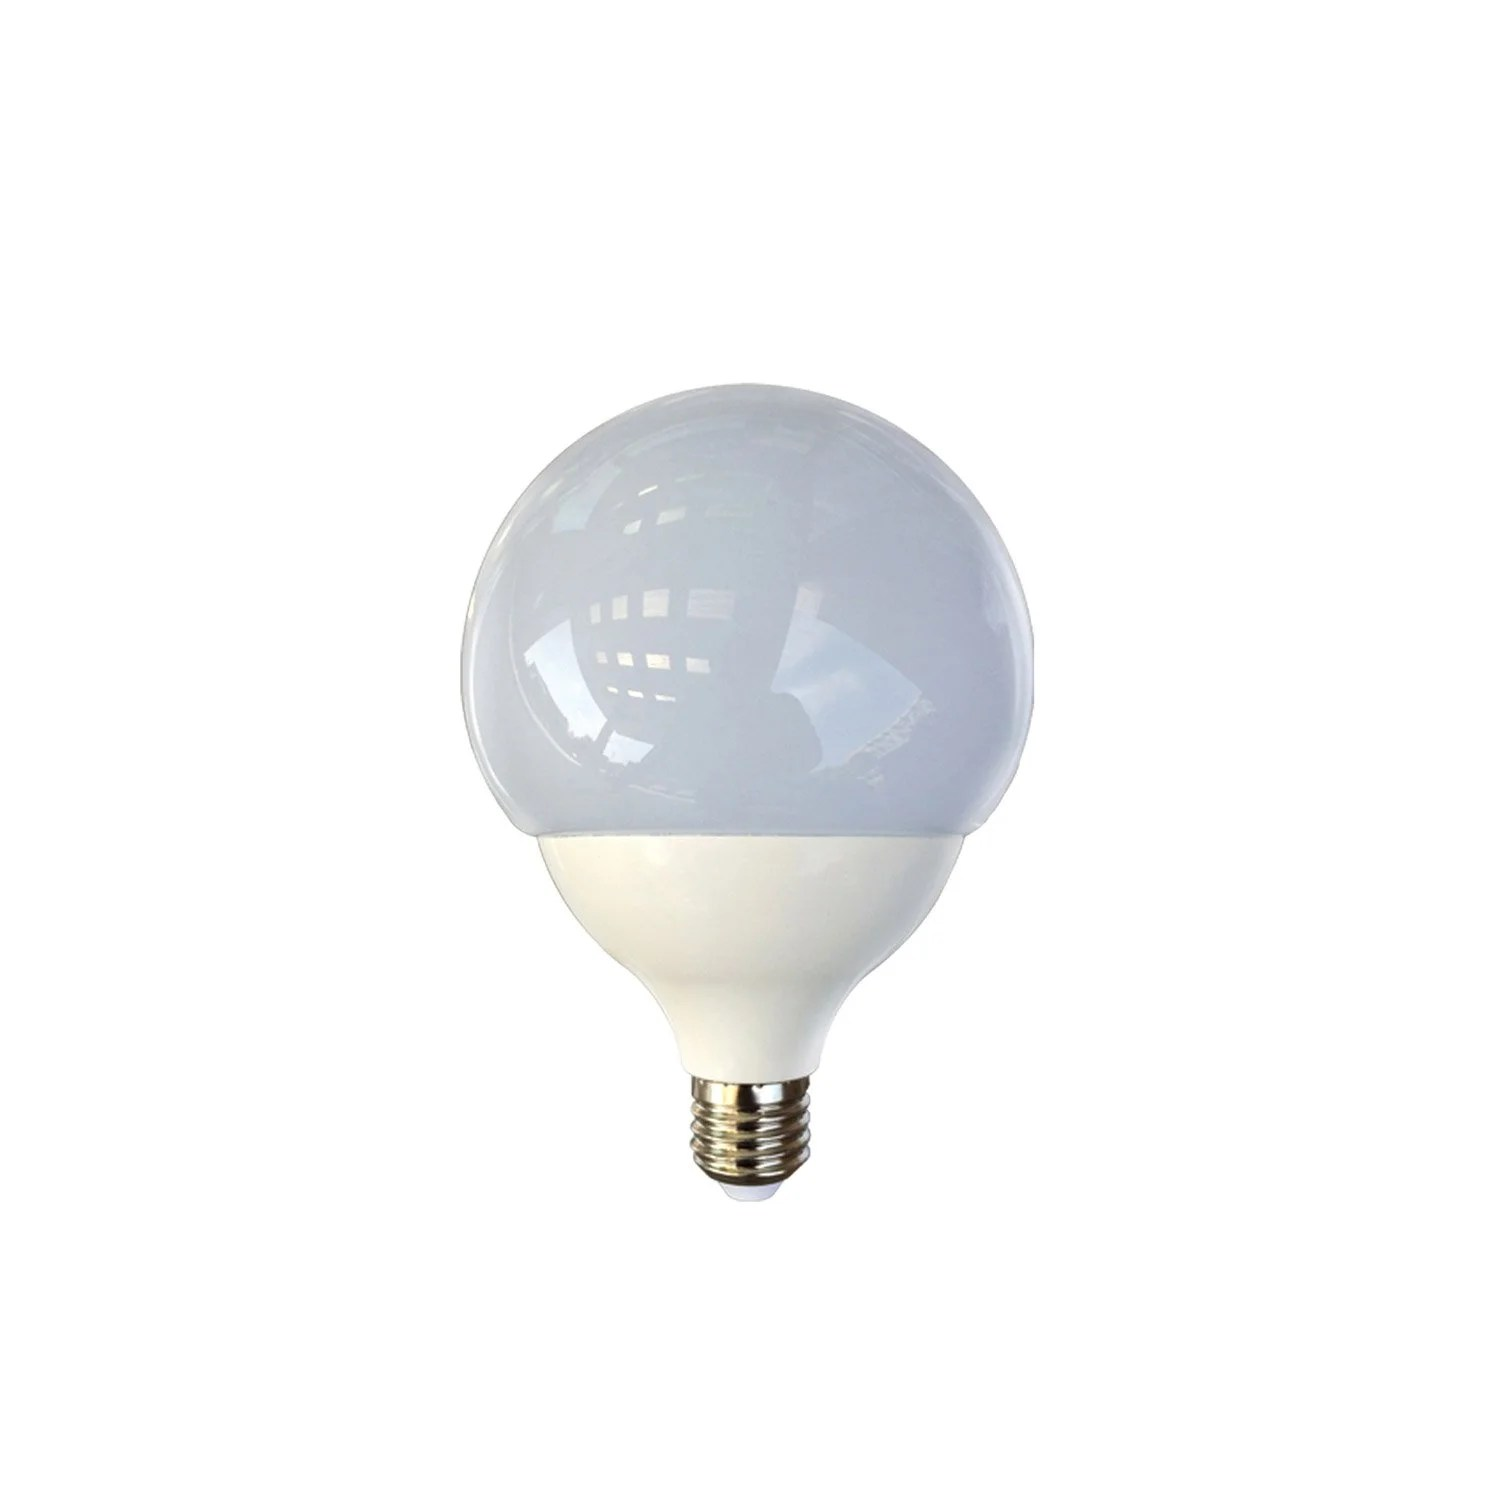 Ampoule Filament Led Leroy Merlin Led E27 150w Ampoule Led E27 Clairage 150w Philips Led Lampe